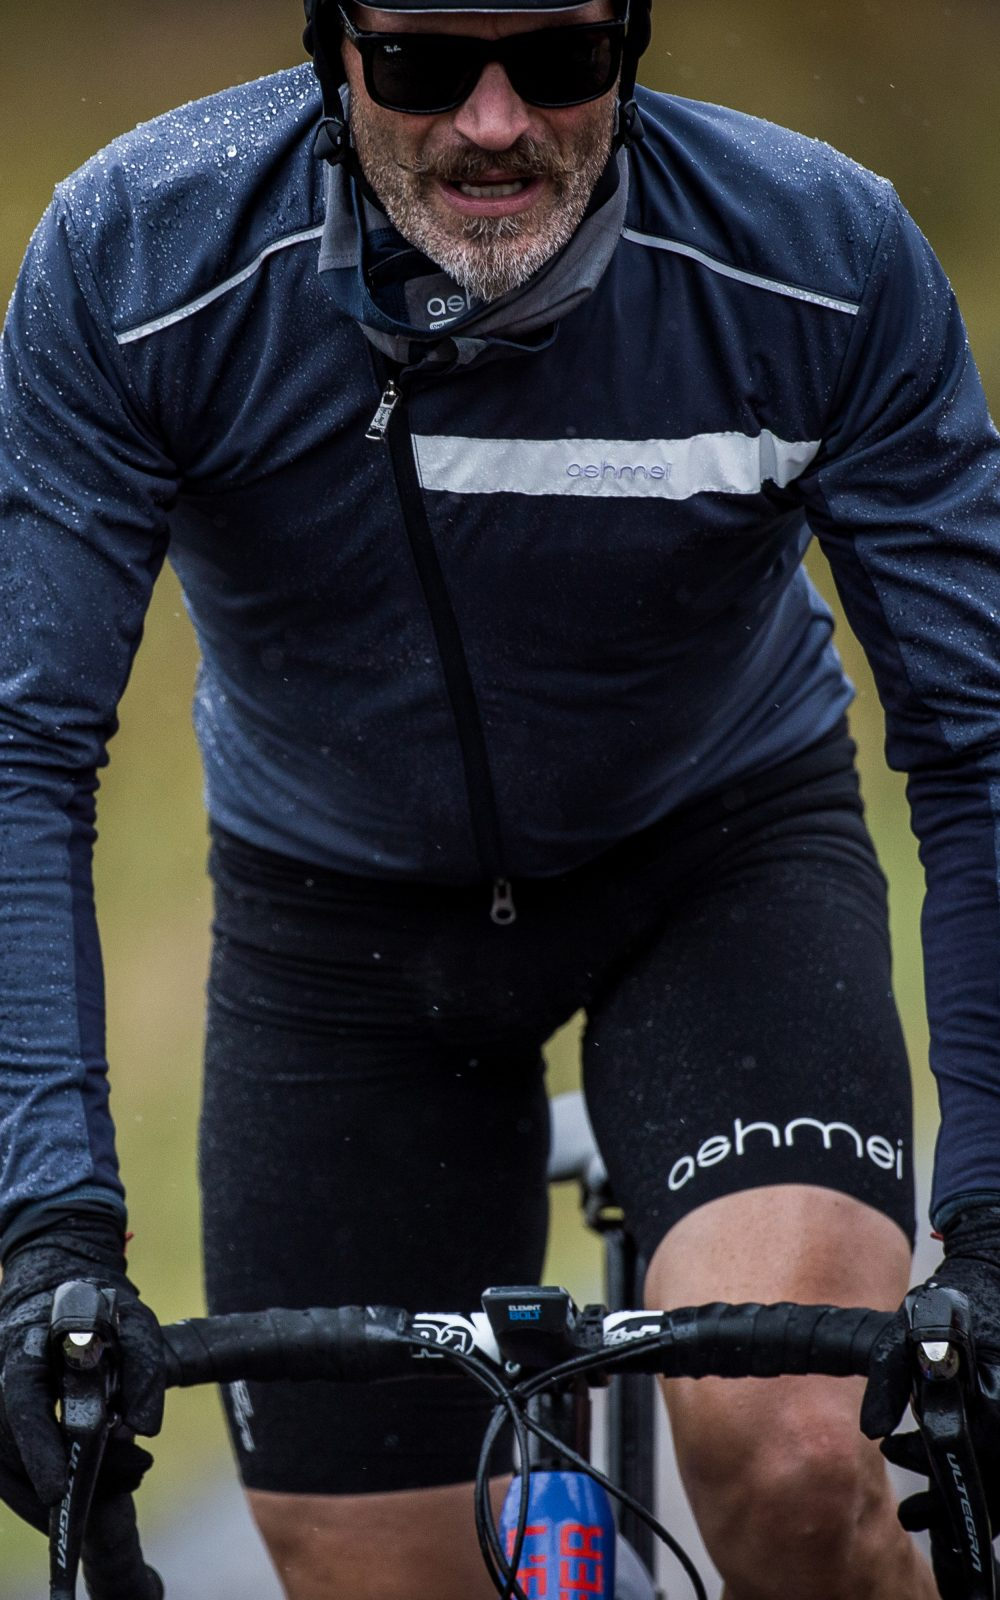 ashmei | Cycle Bib Short